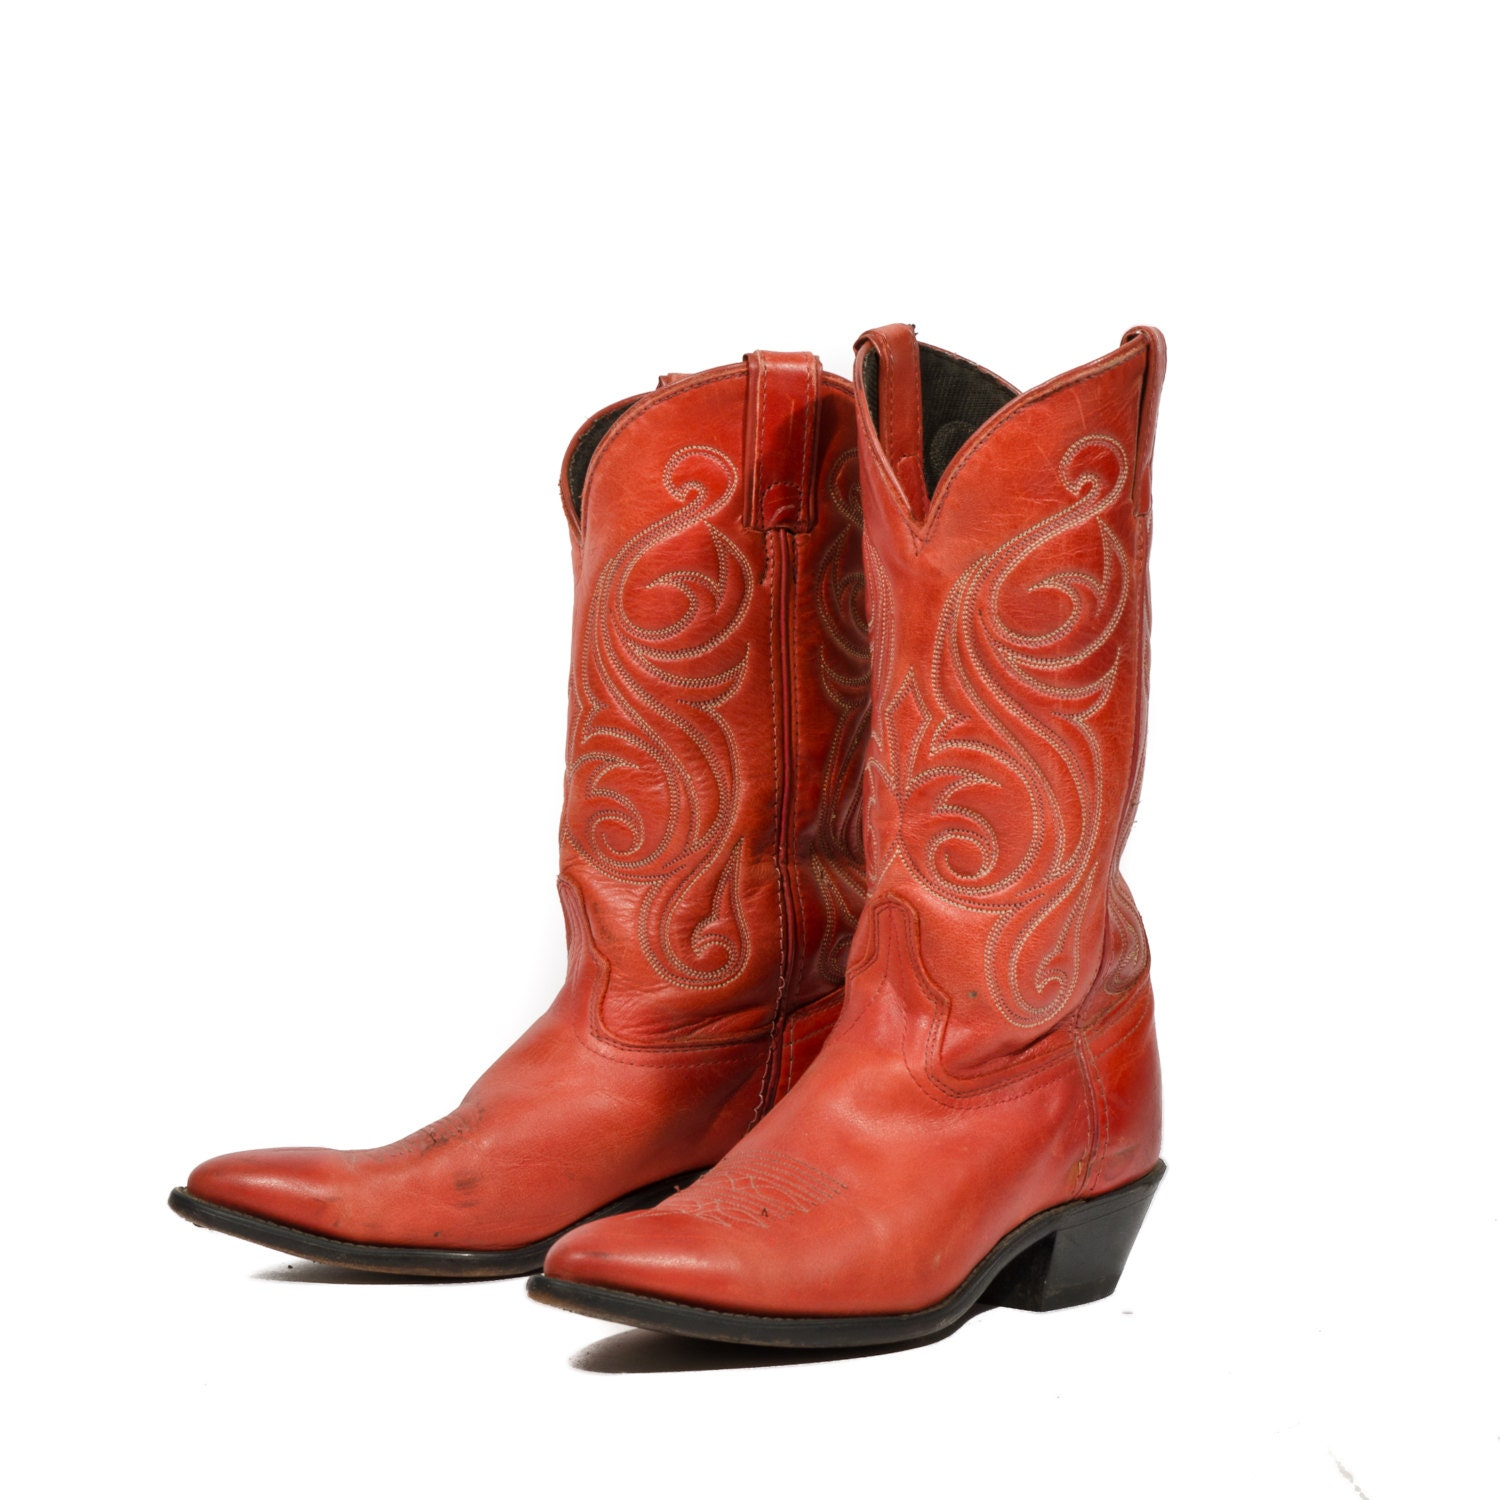 Creative El Corral Vaquero Western Wear Offers A Variety Of Wrangler Jeans In All Styles And Colors Including Brown, Blue And Even Red Shoppers Can Also Find Womens Accessories, Boots And Spanish Music Papa Jack Weil, Founded Rockmount